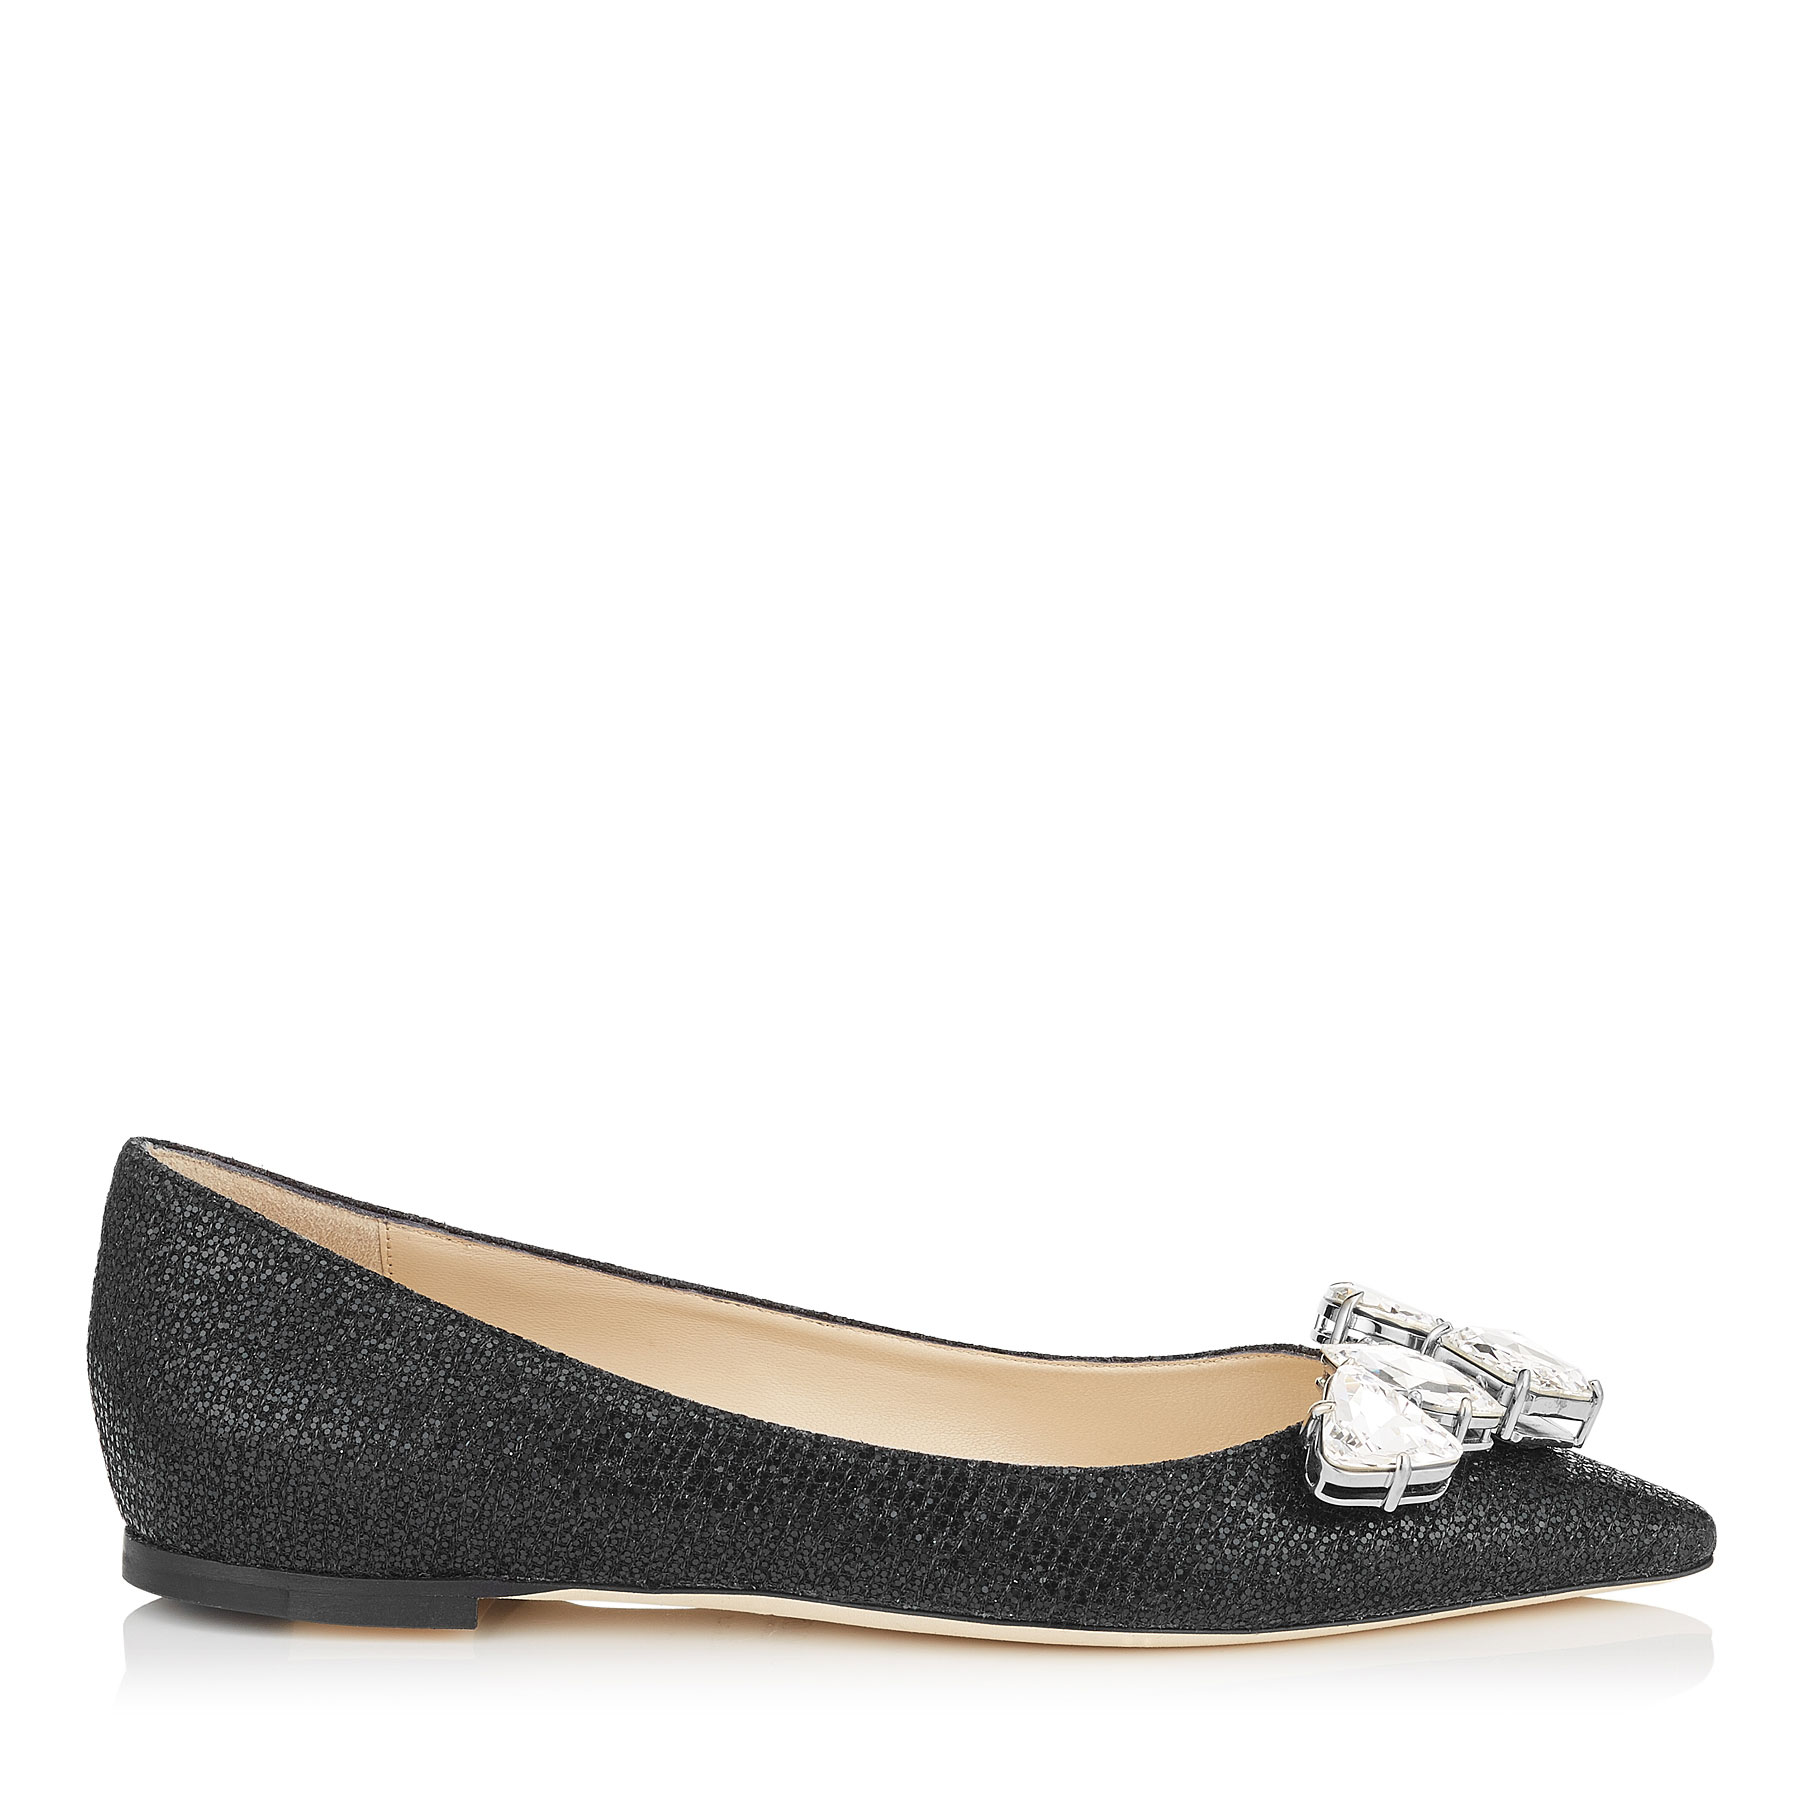 MARVEL FLAT Black Glitter Fabric Pointy Toe Flats with Crystal Piece